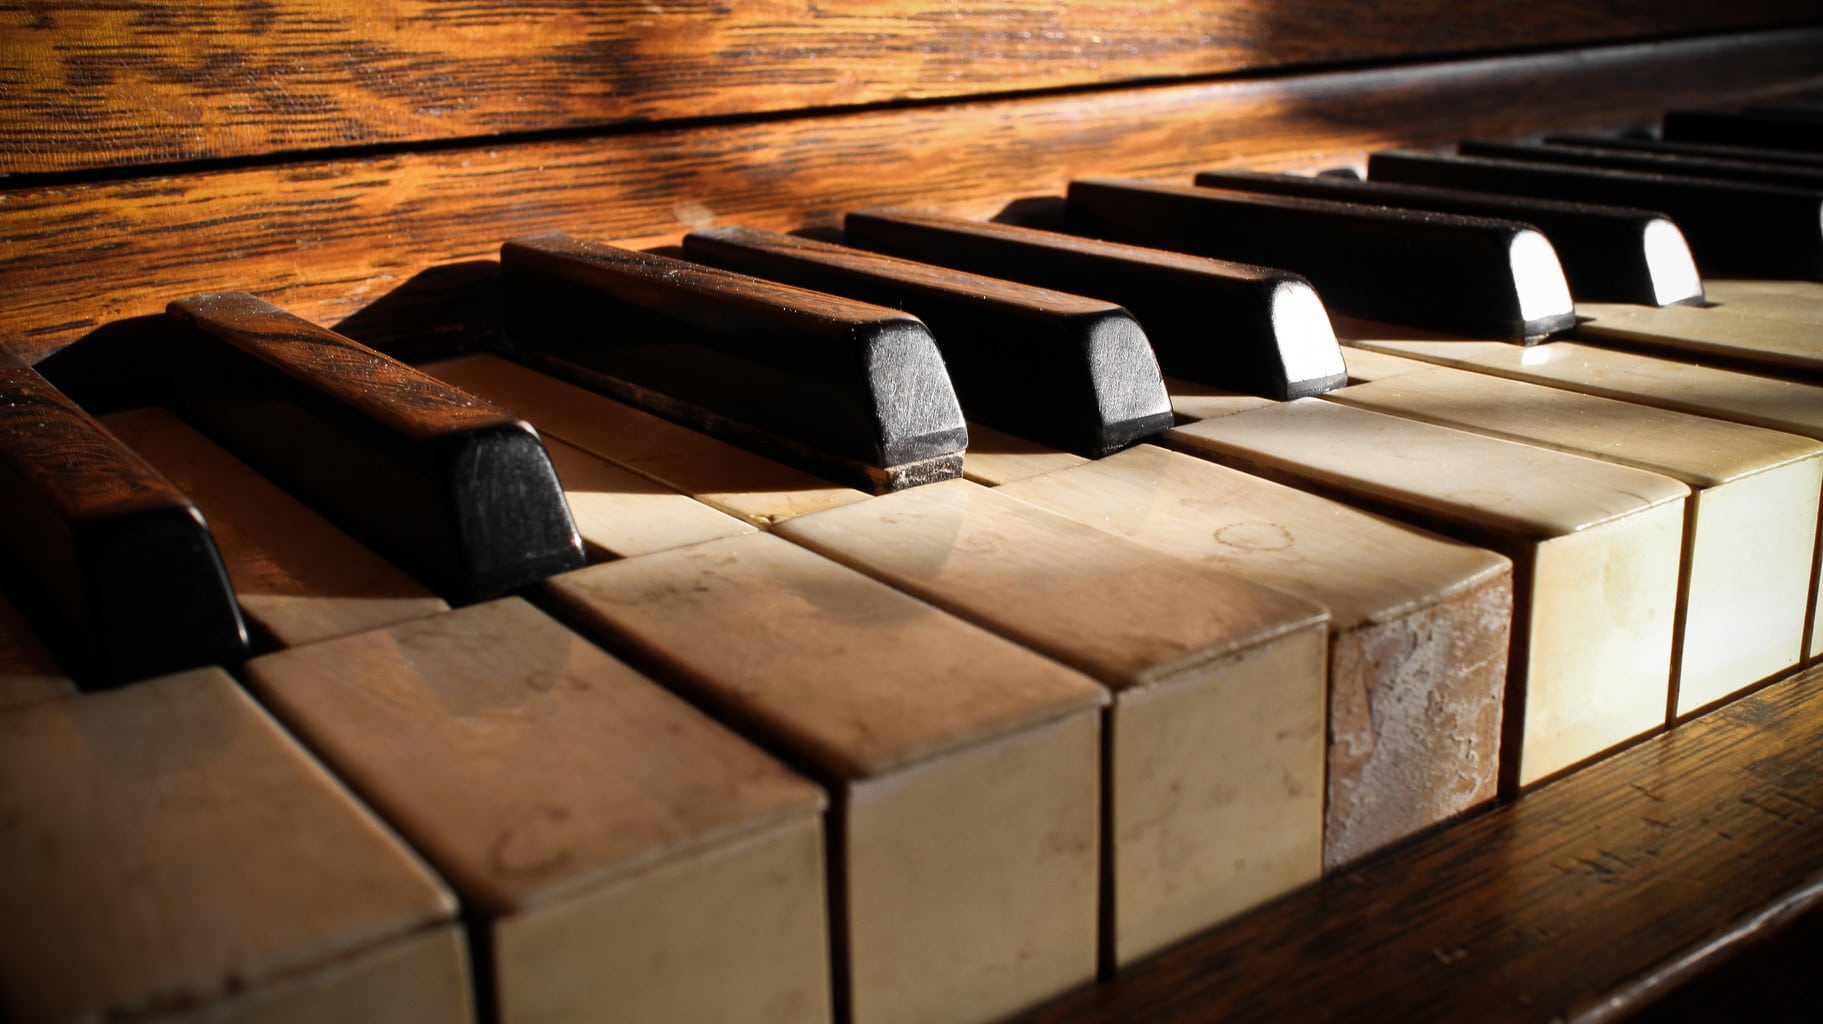 A #piano #improv EP inspired by love